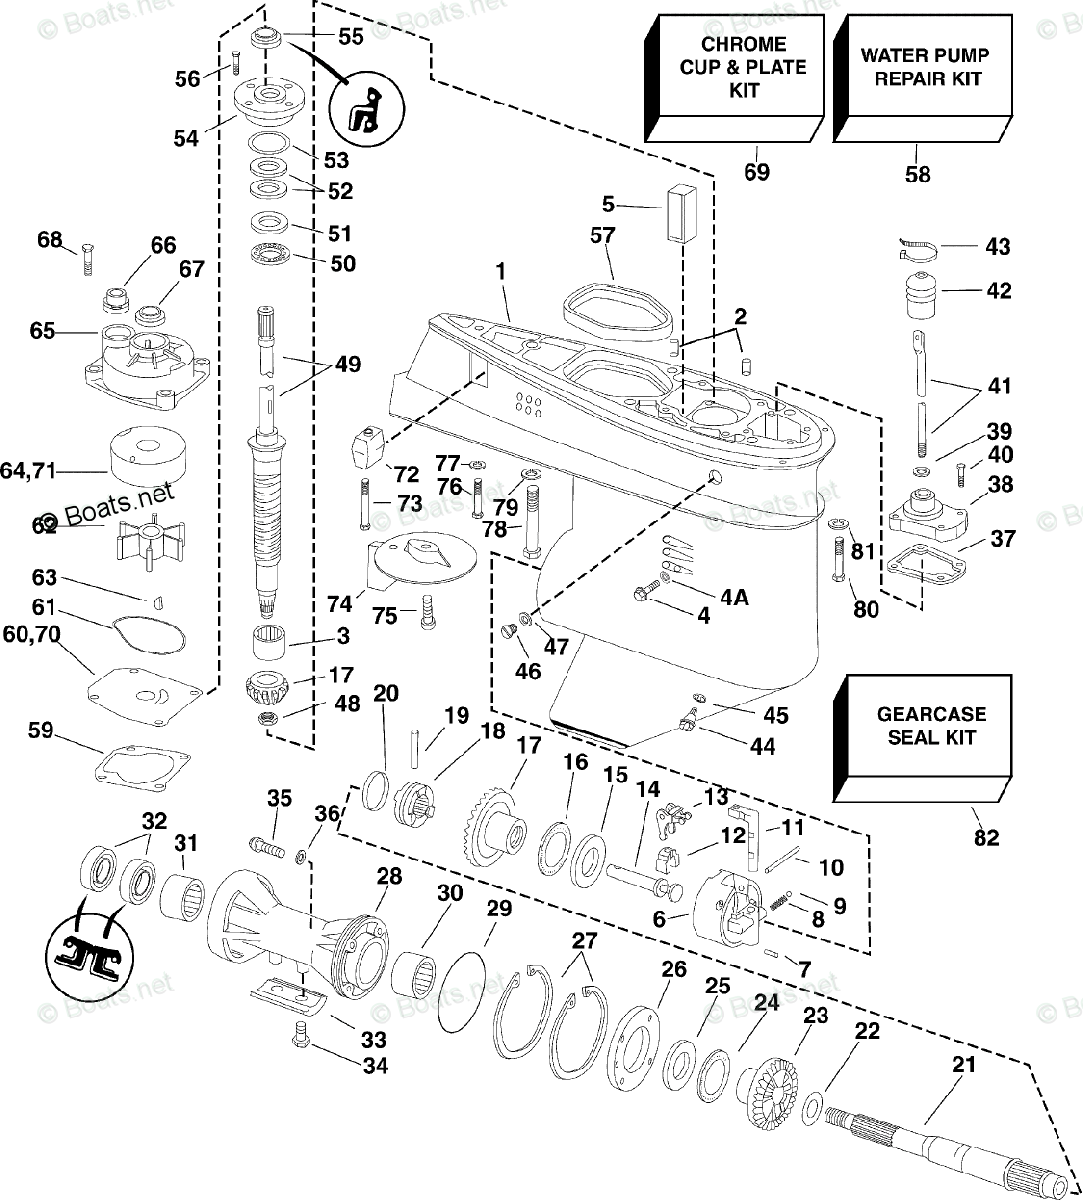 Evinrude Outboard Parts By Hp 60hp Oem Parts Diagram For